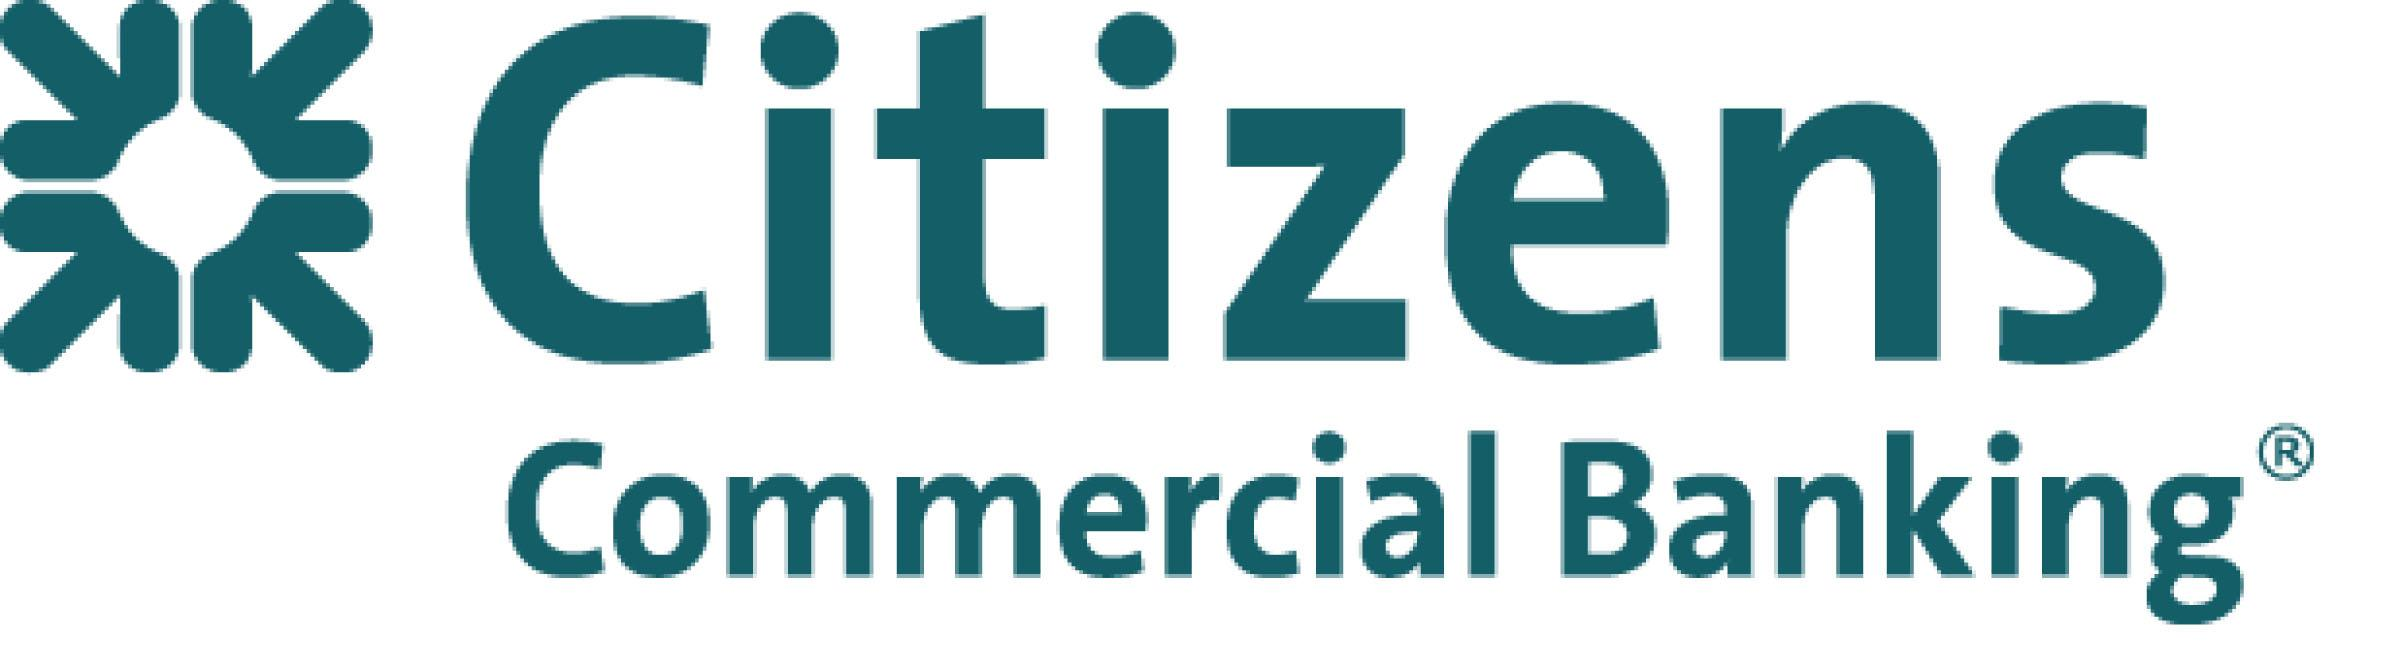 silver citizens commercial banking